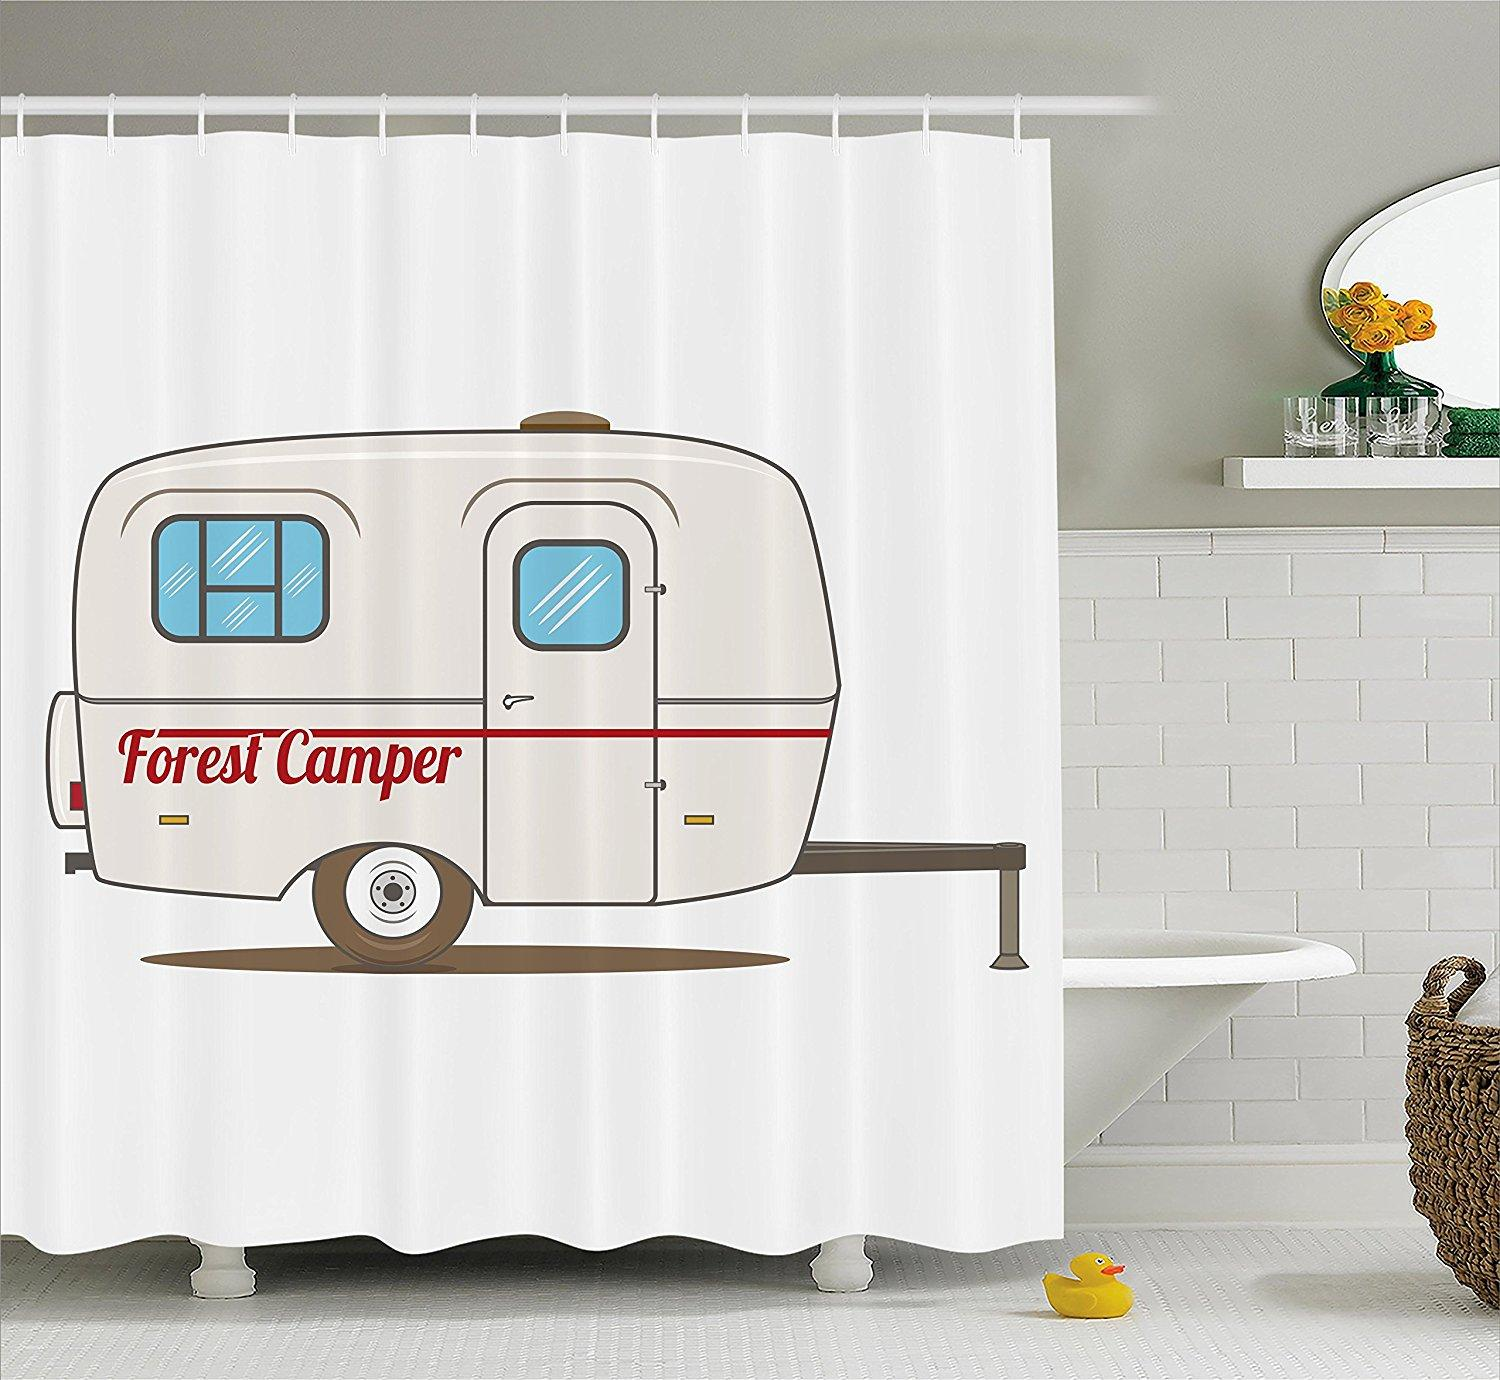 2019 Memory Home Shower Curtain Cute Vintage Caravan Travelers Truck On The Road Retro Design Fabric Bathroom Decor With Hooks From Sheiler 27 01